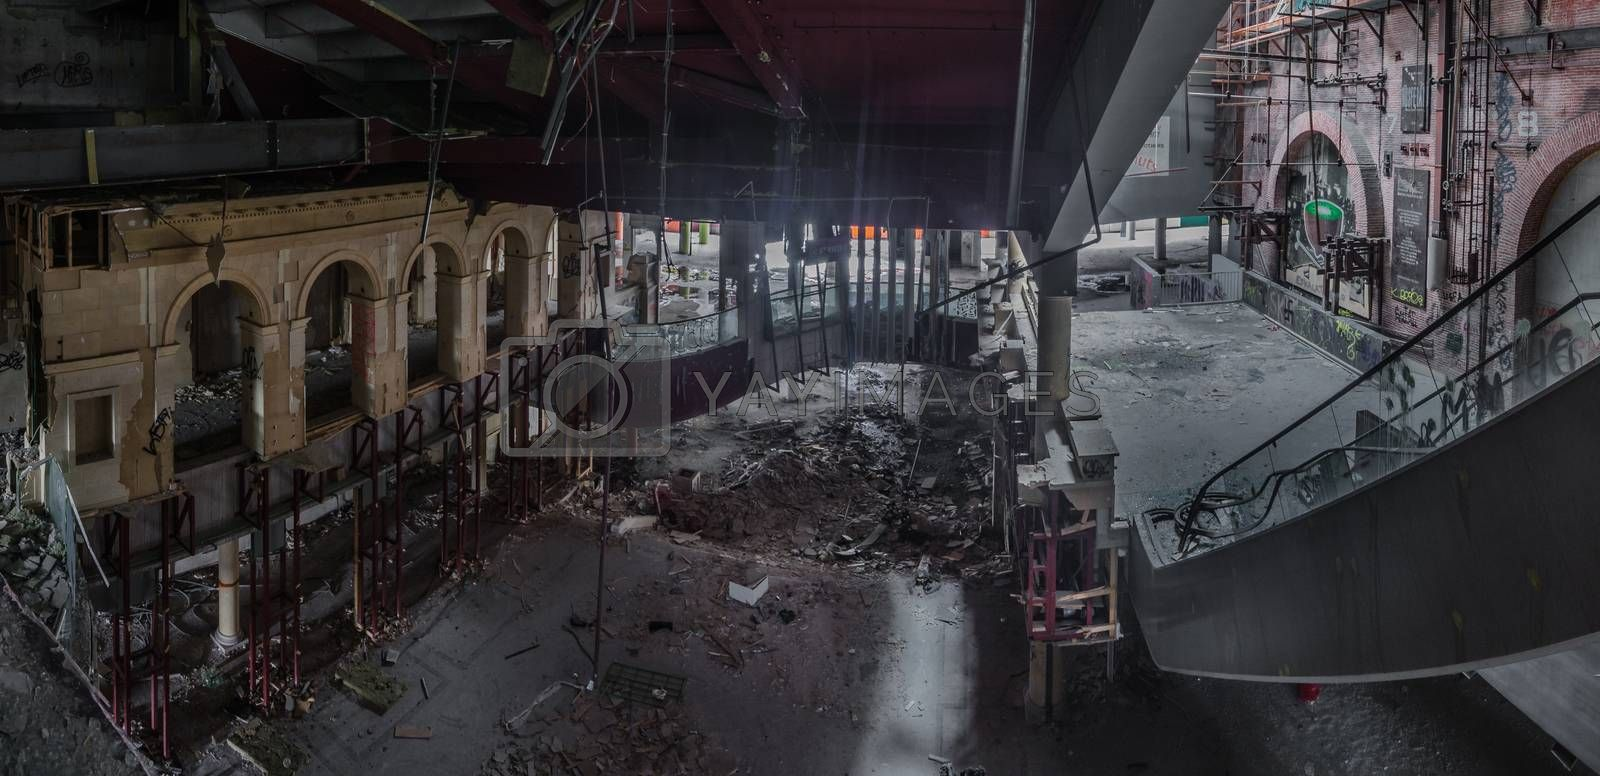 dilapidated department store in a city panorama view